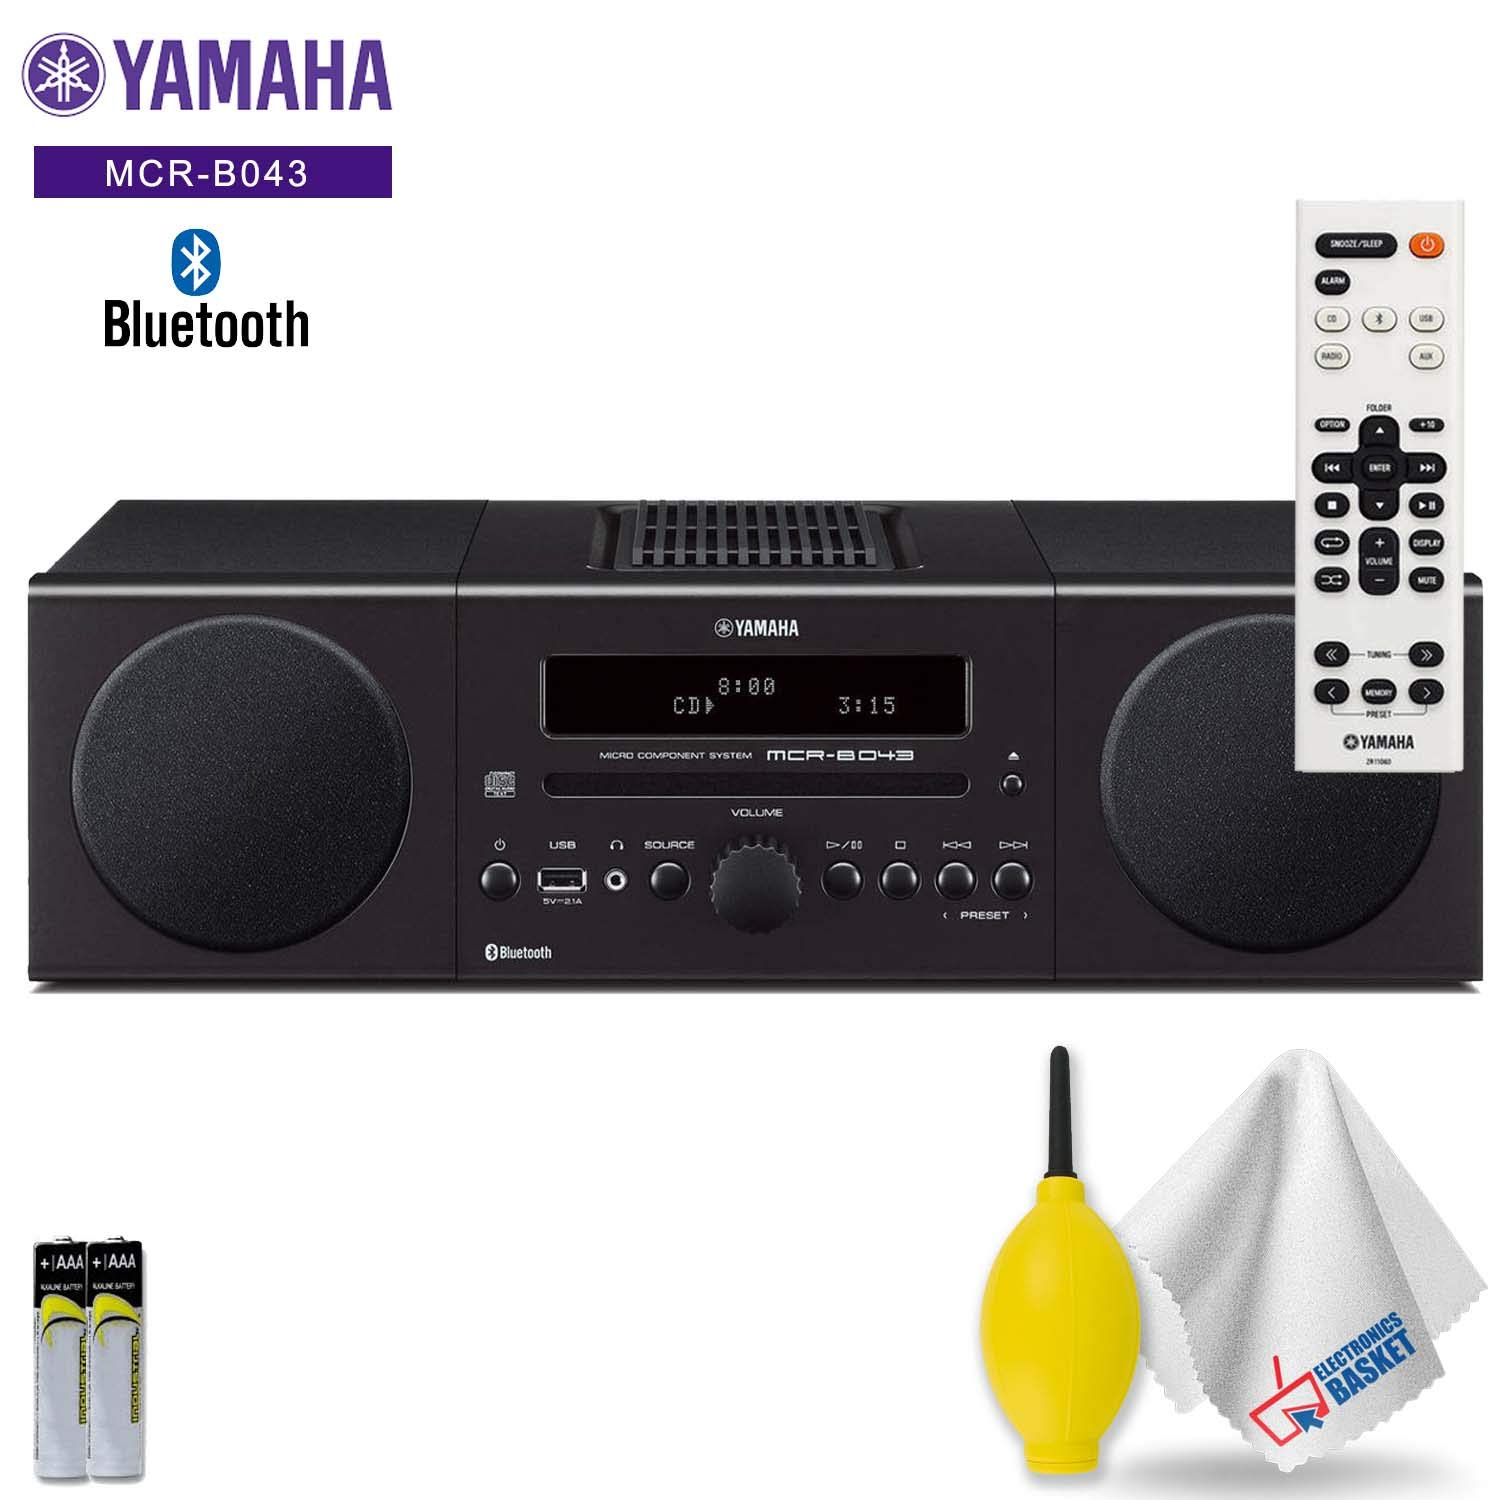 Yamaha MCR-B043 30W Bluetooth Wireless Music System (Black) Acessory Kit - Includes - Cleaning Kit